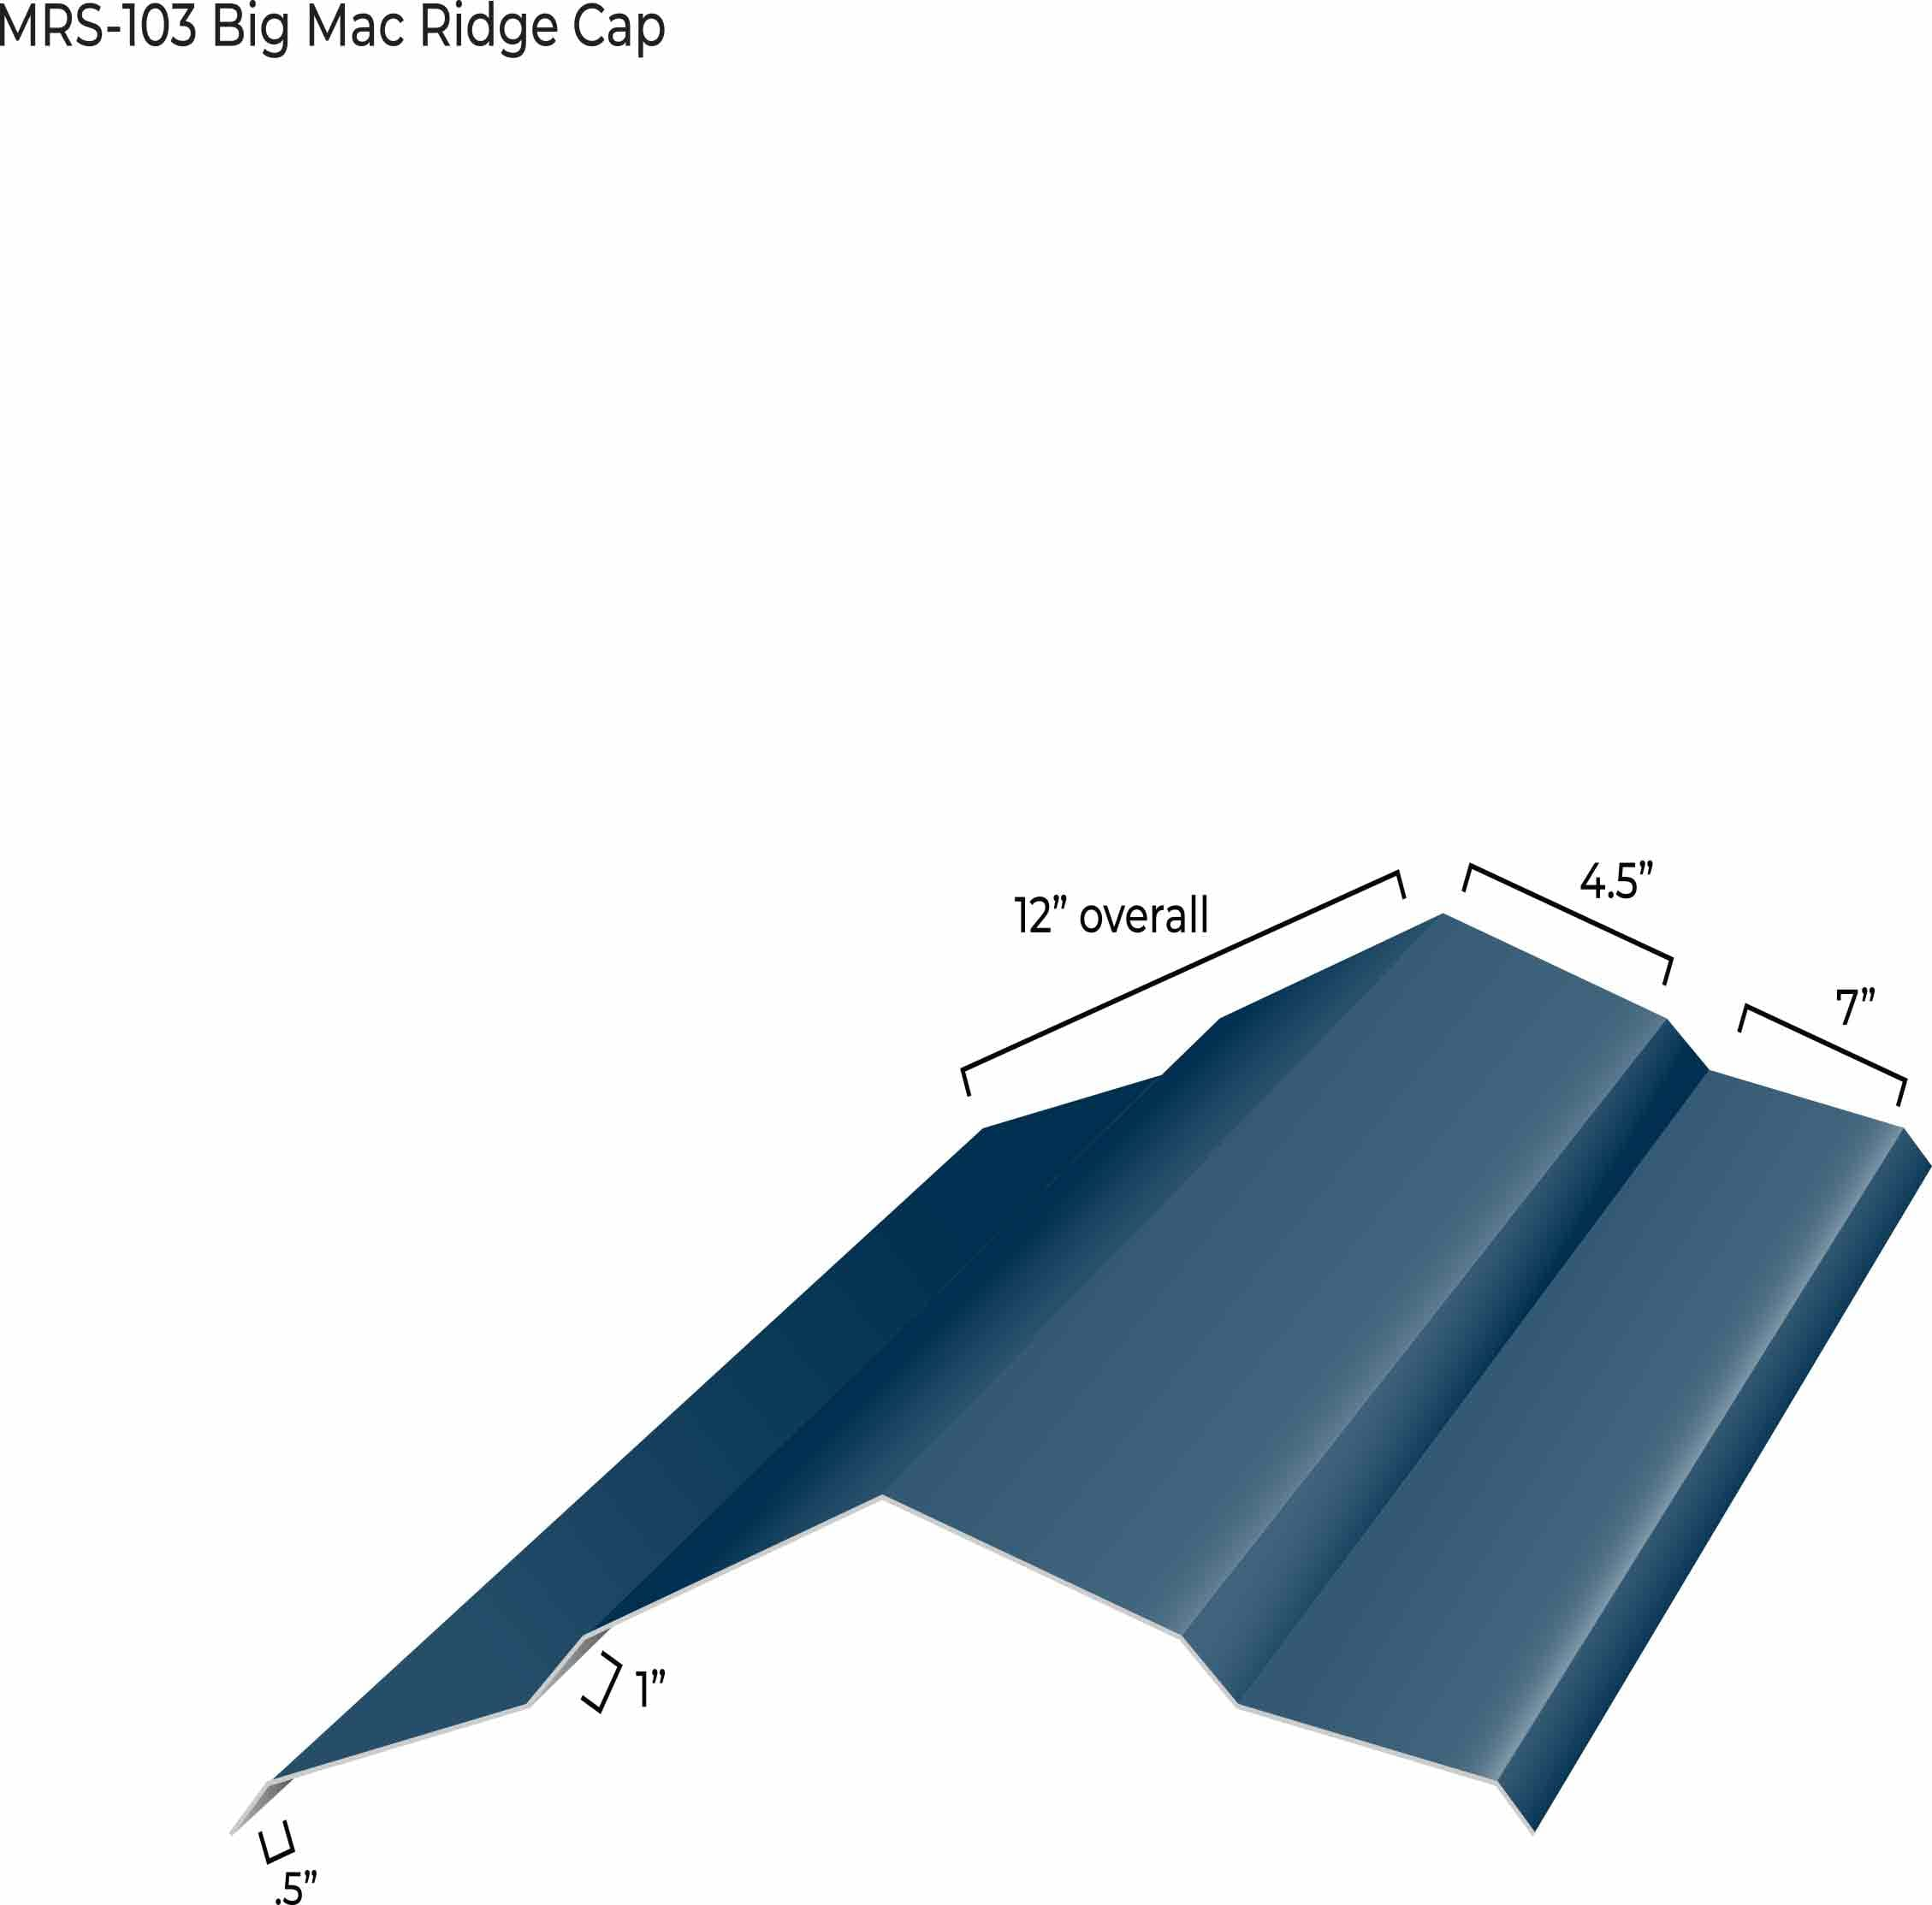 MRS-103 Big Mac Ridge Cap